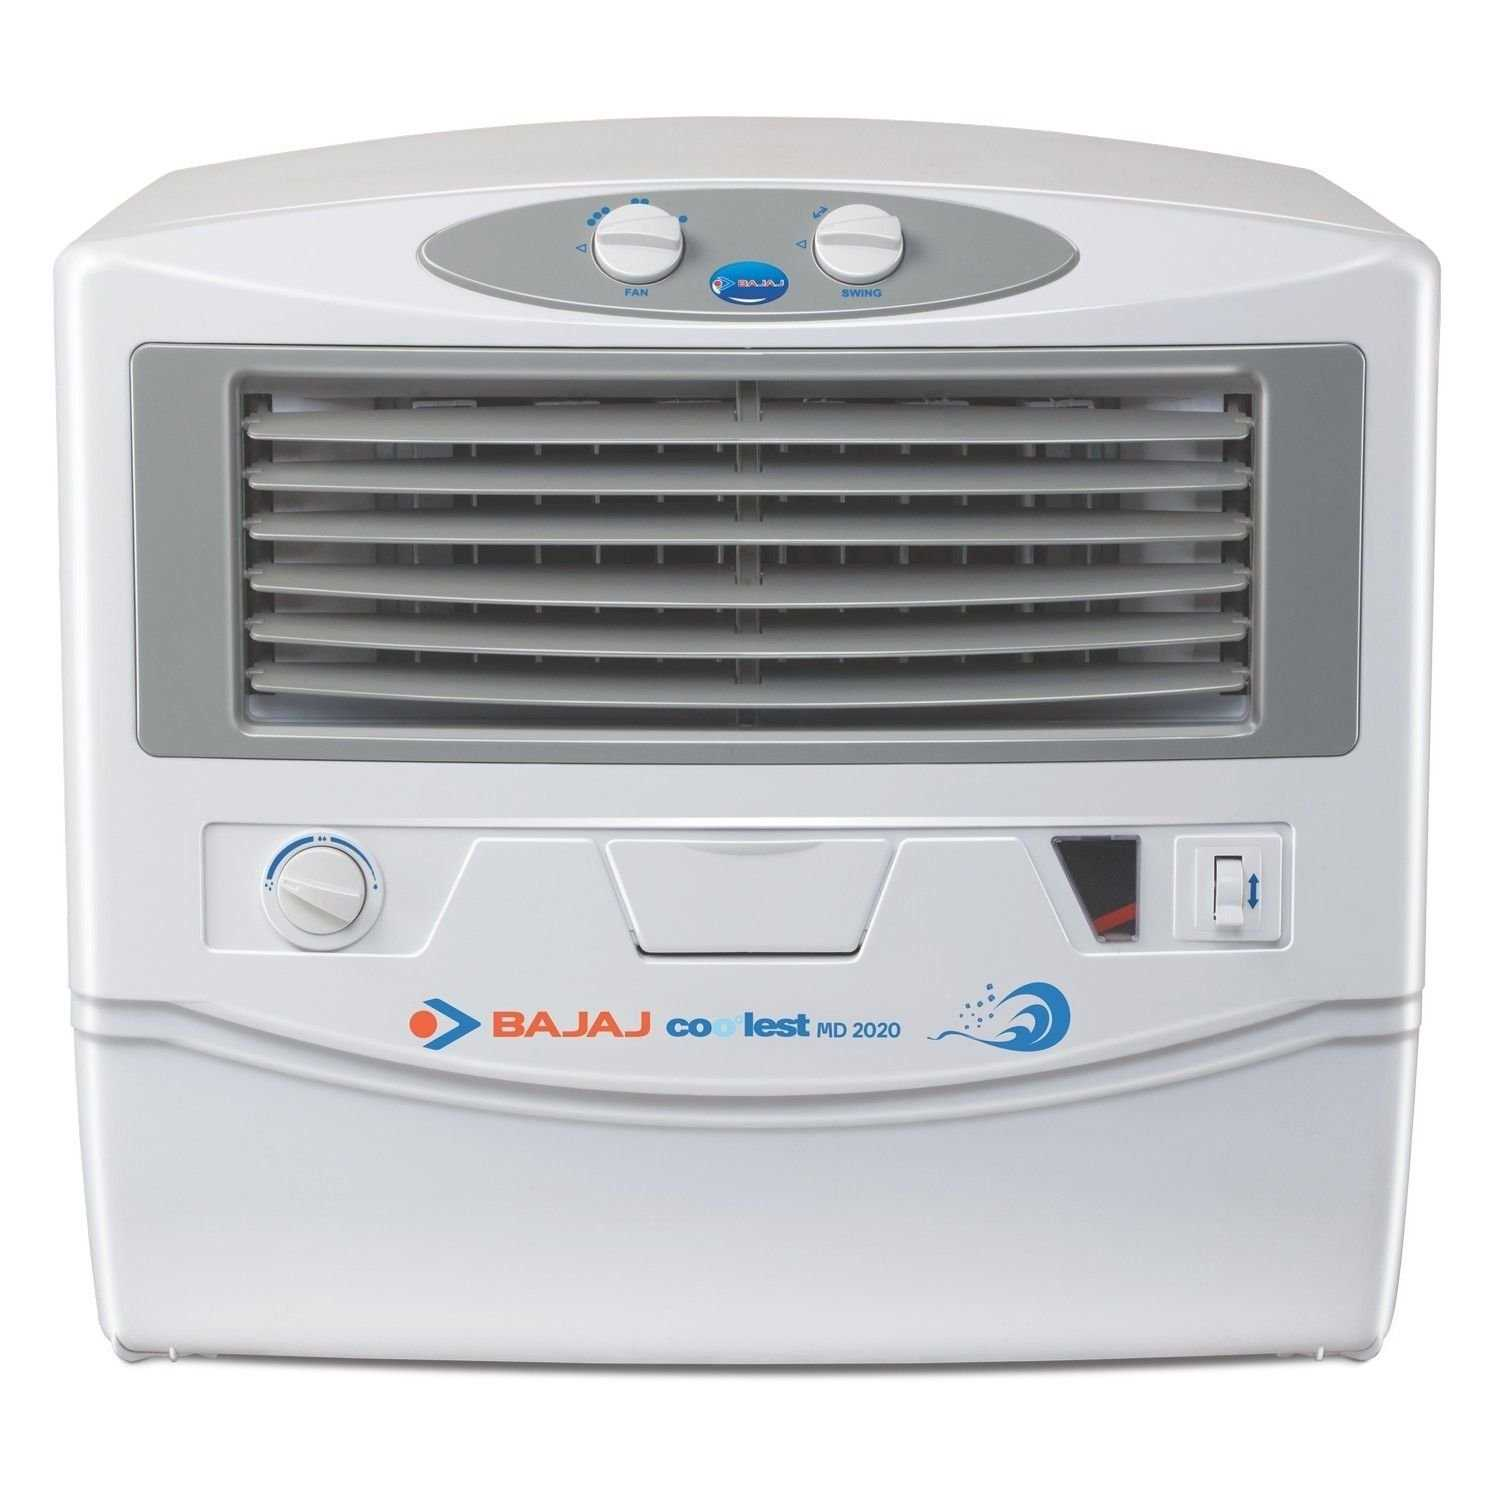 Bajaj MD2020 54 Litre Window Air Cooler